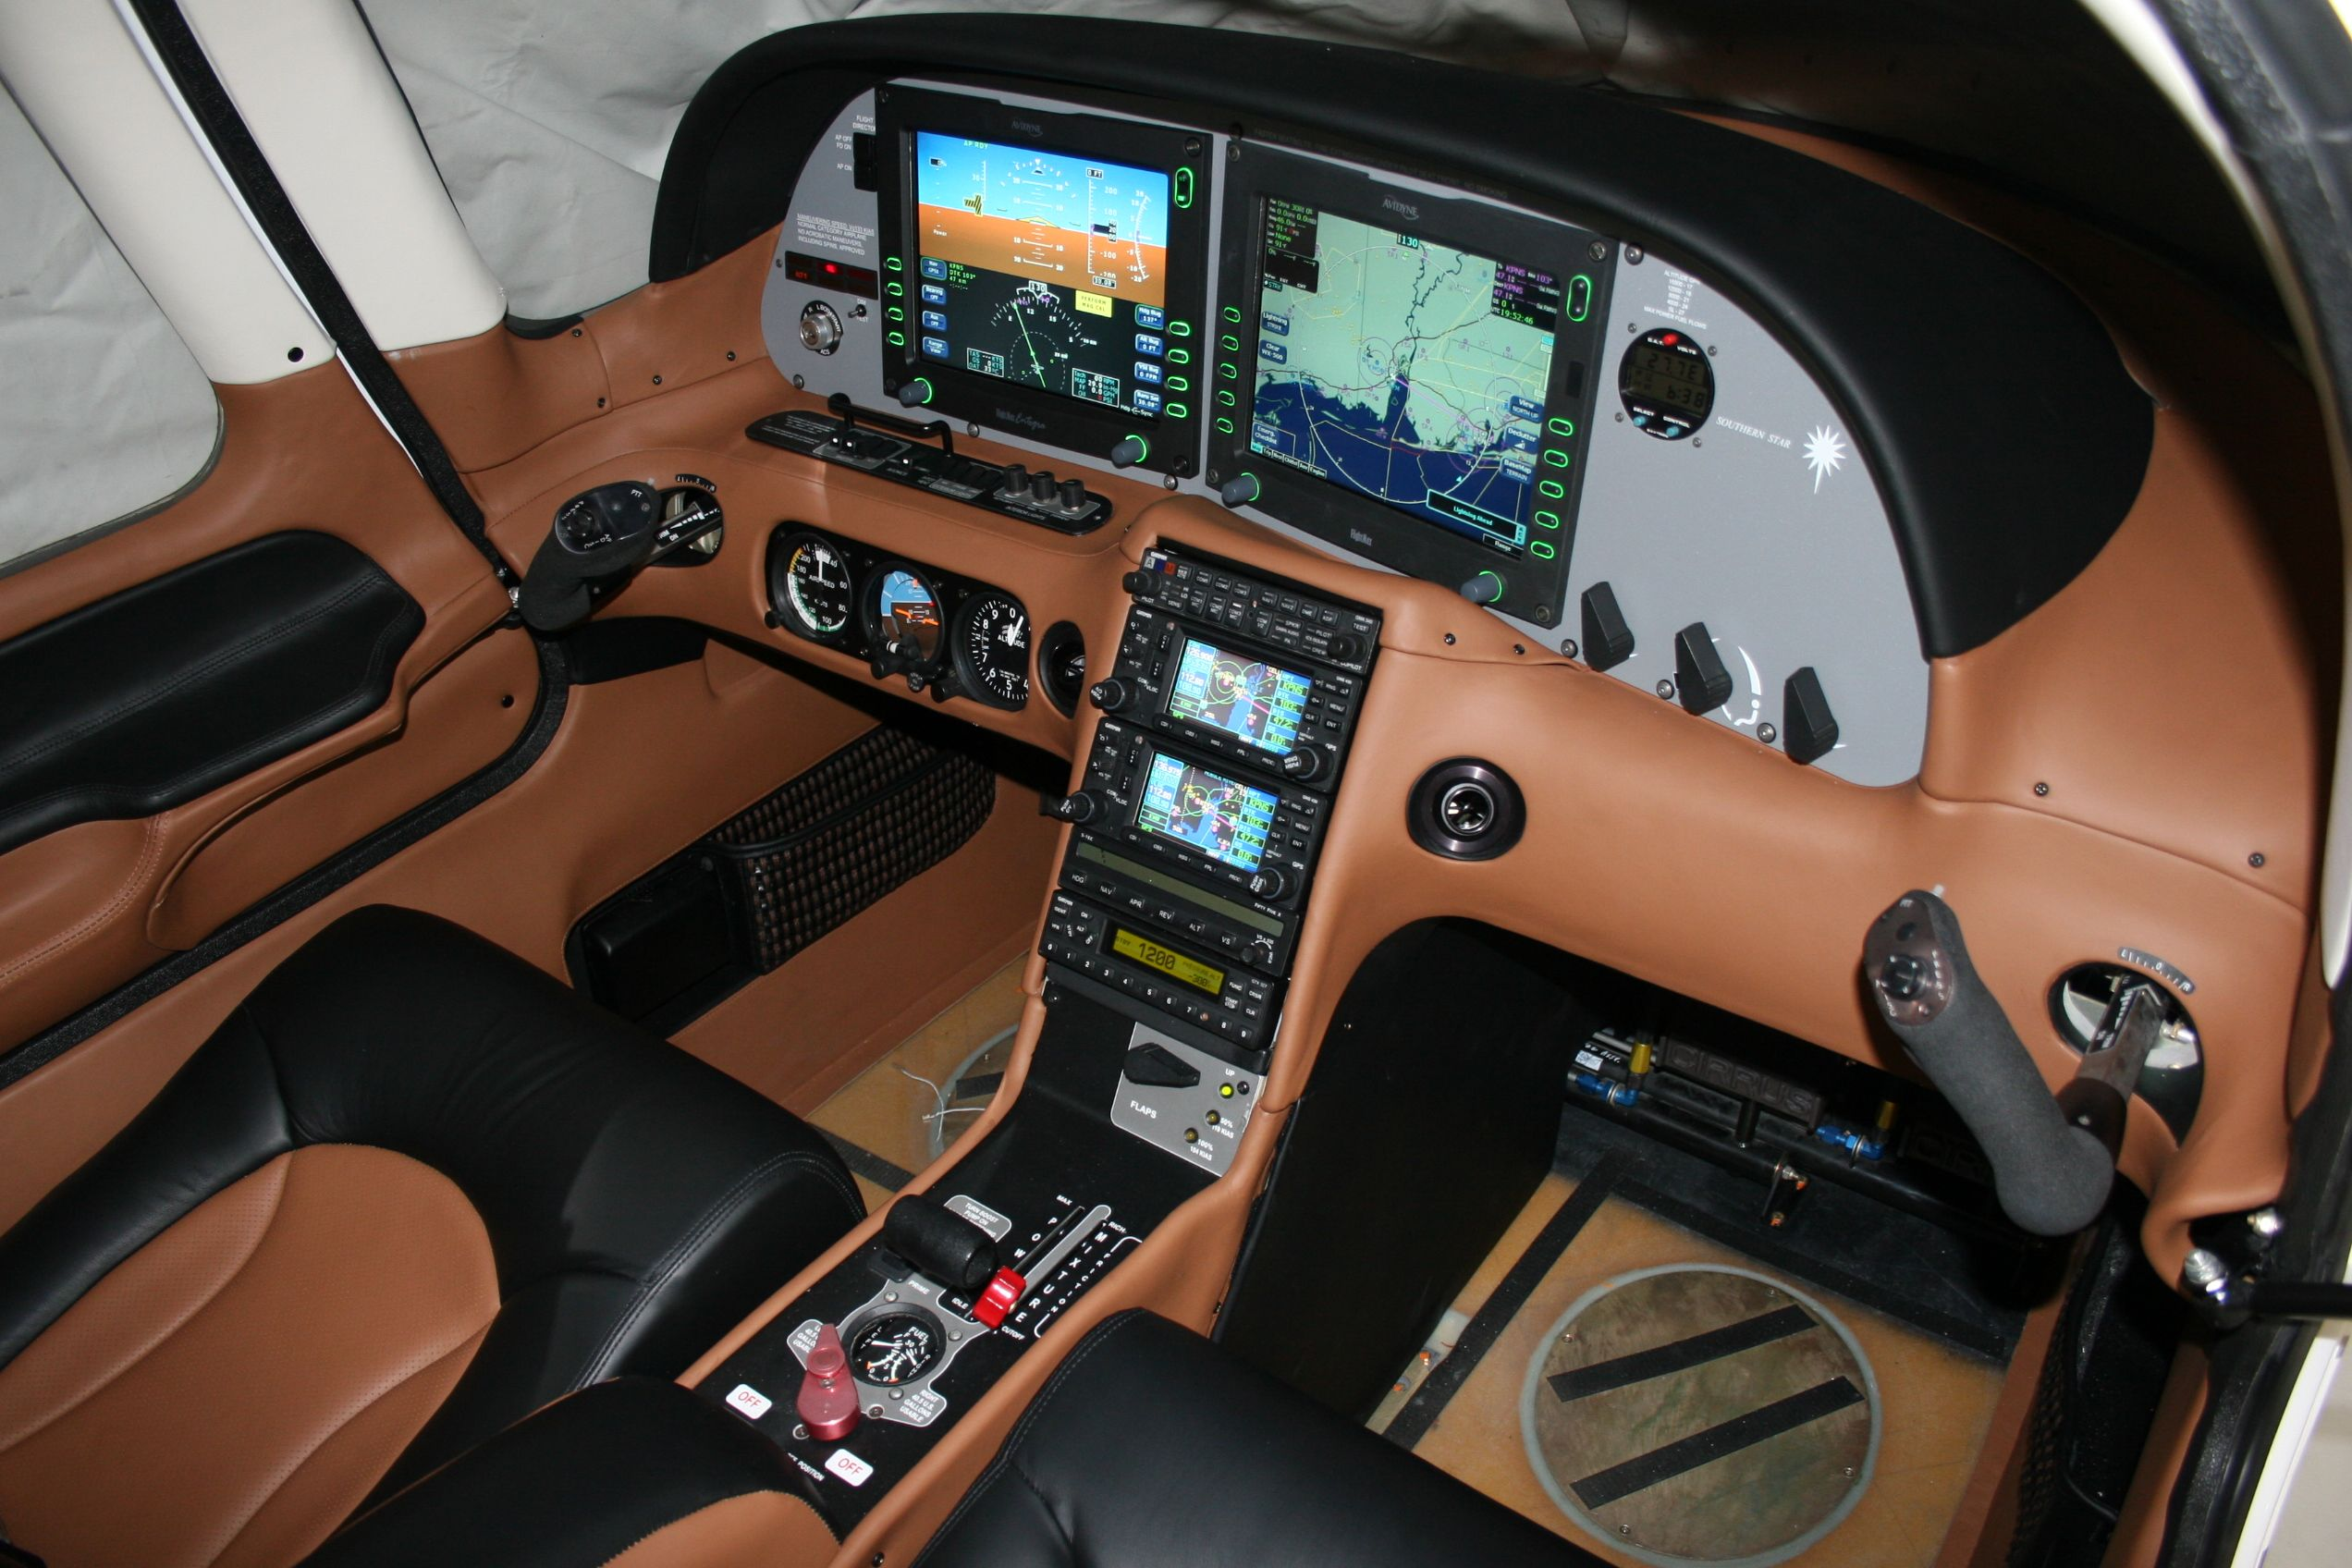 Leather Interior Of A Cirrus Sr 22 Like The Interior Of A Luxury